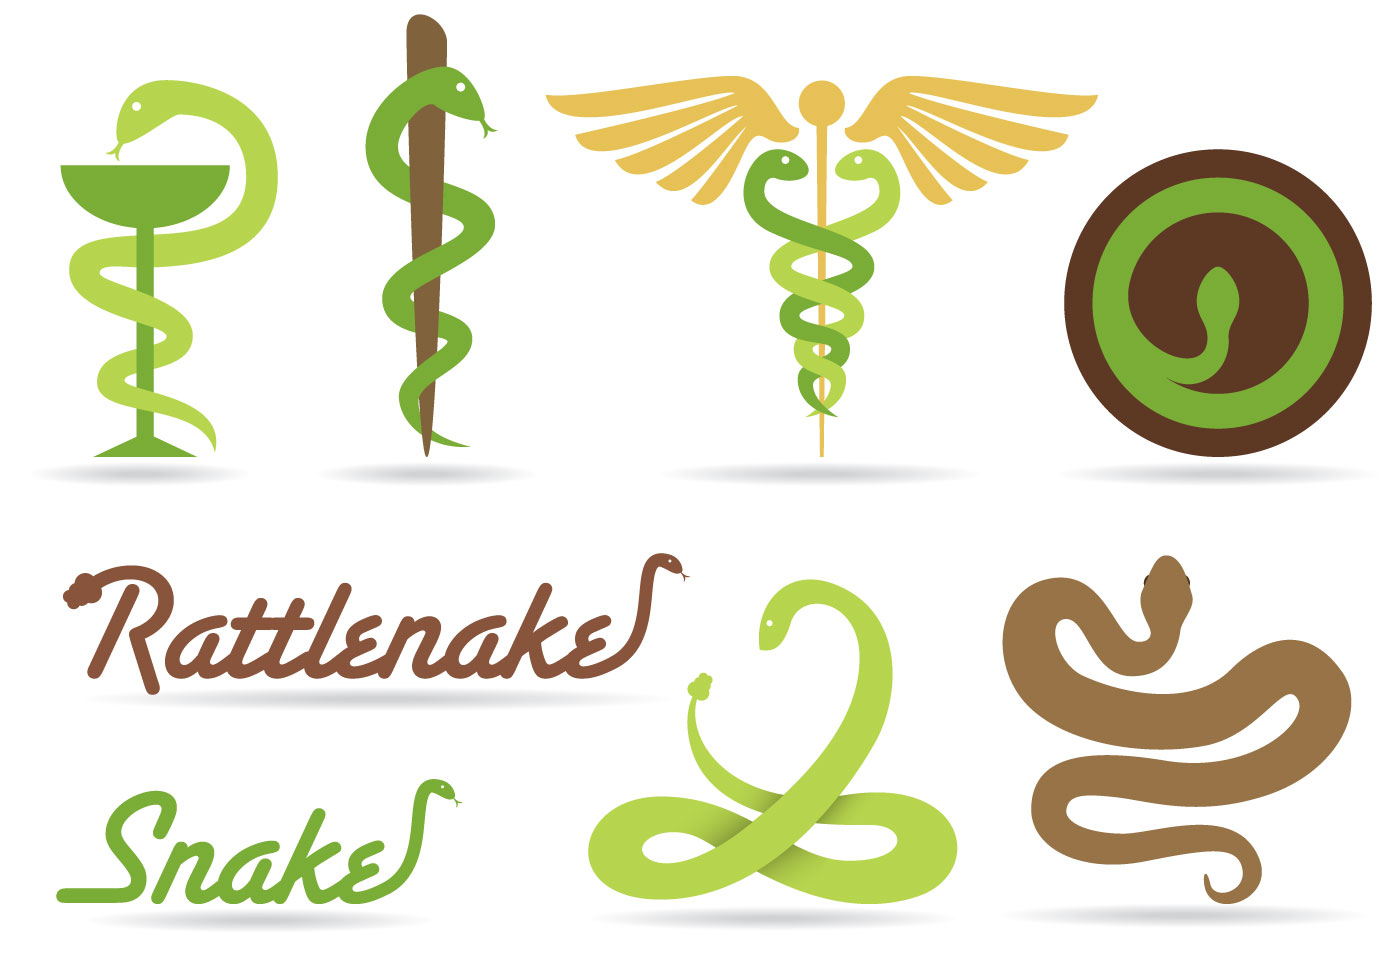 Snake Logo Vectors - Download Free Vector Art, Stock ...